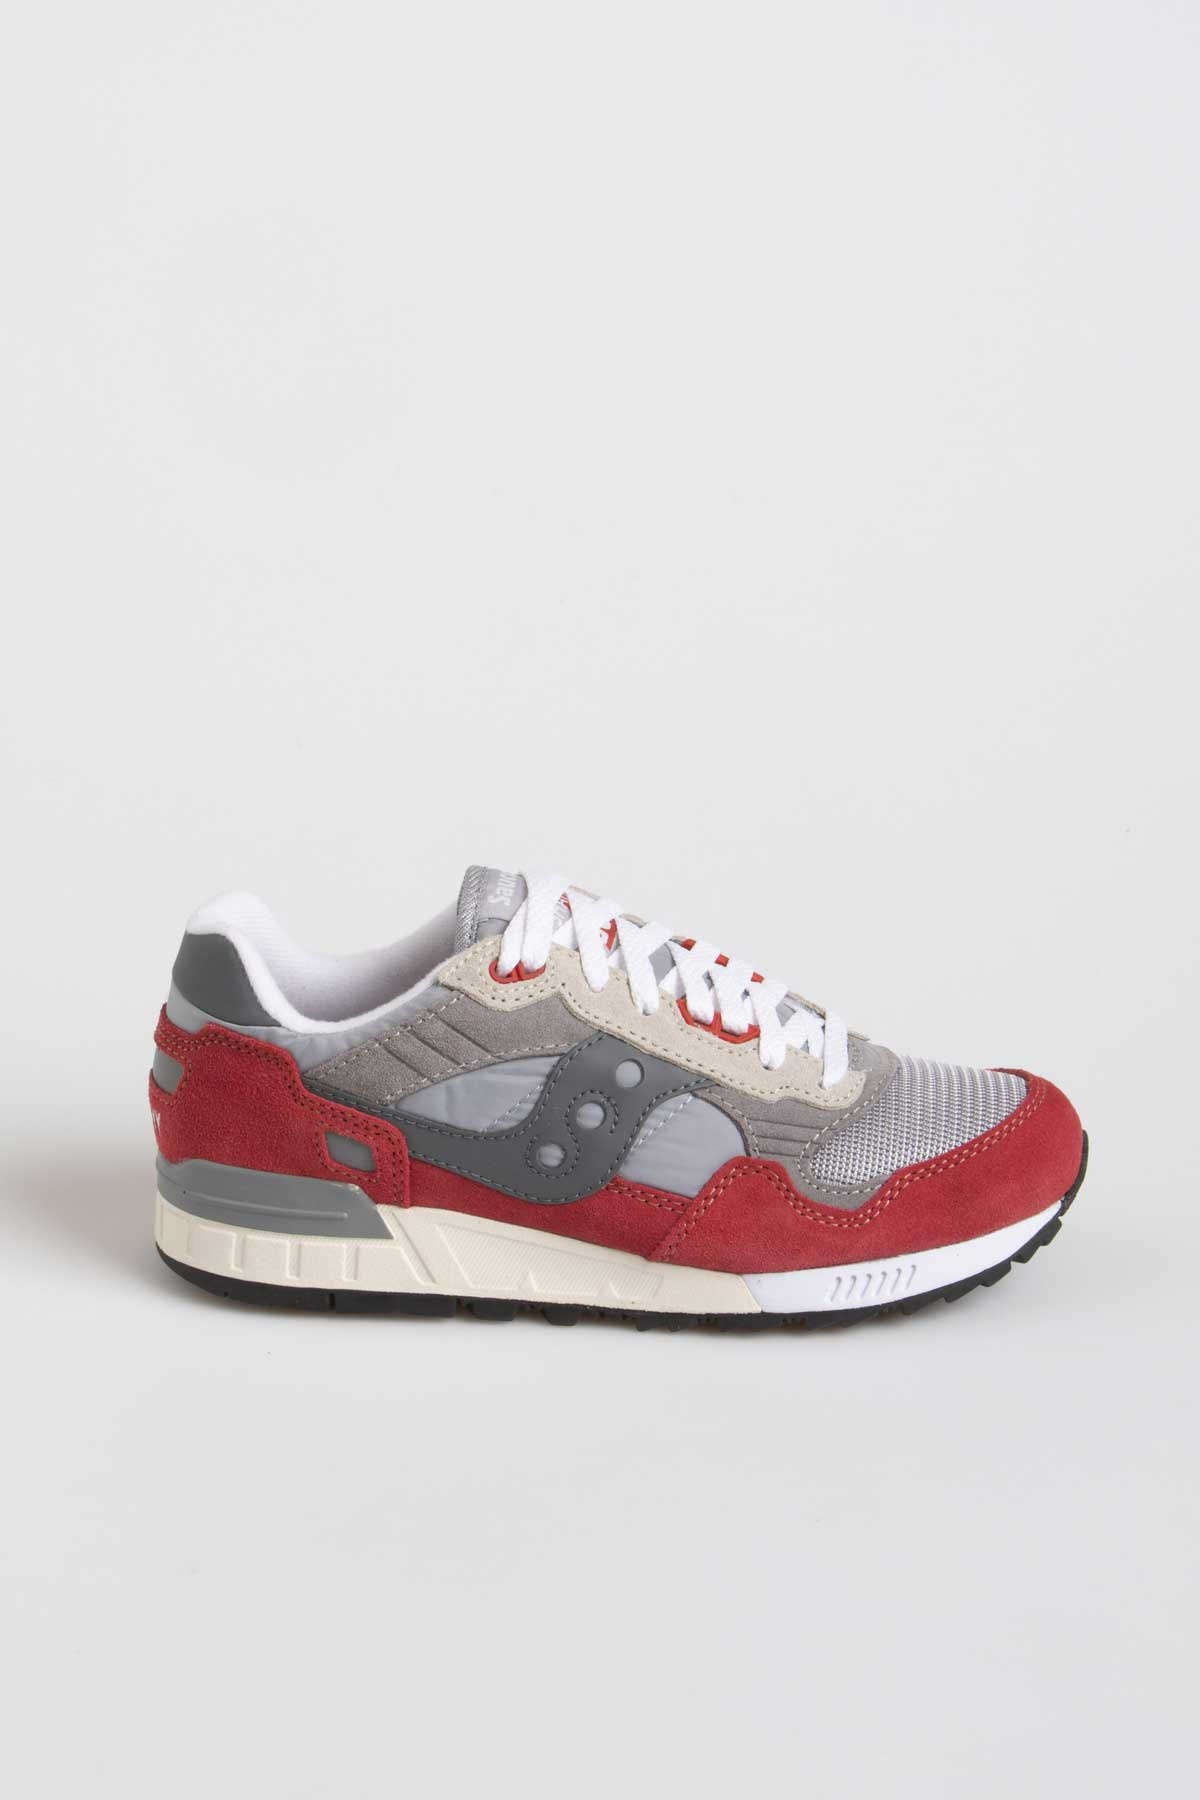 31a7dd47 SAUCONY SHADOW 5000 Vintage grey / red S/S19 - Rione Fontana